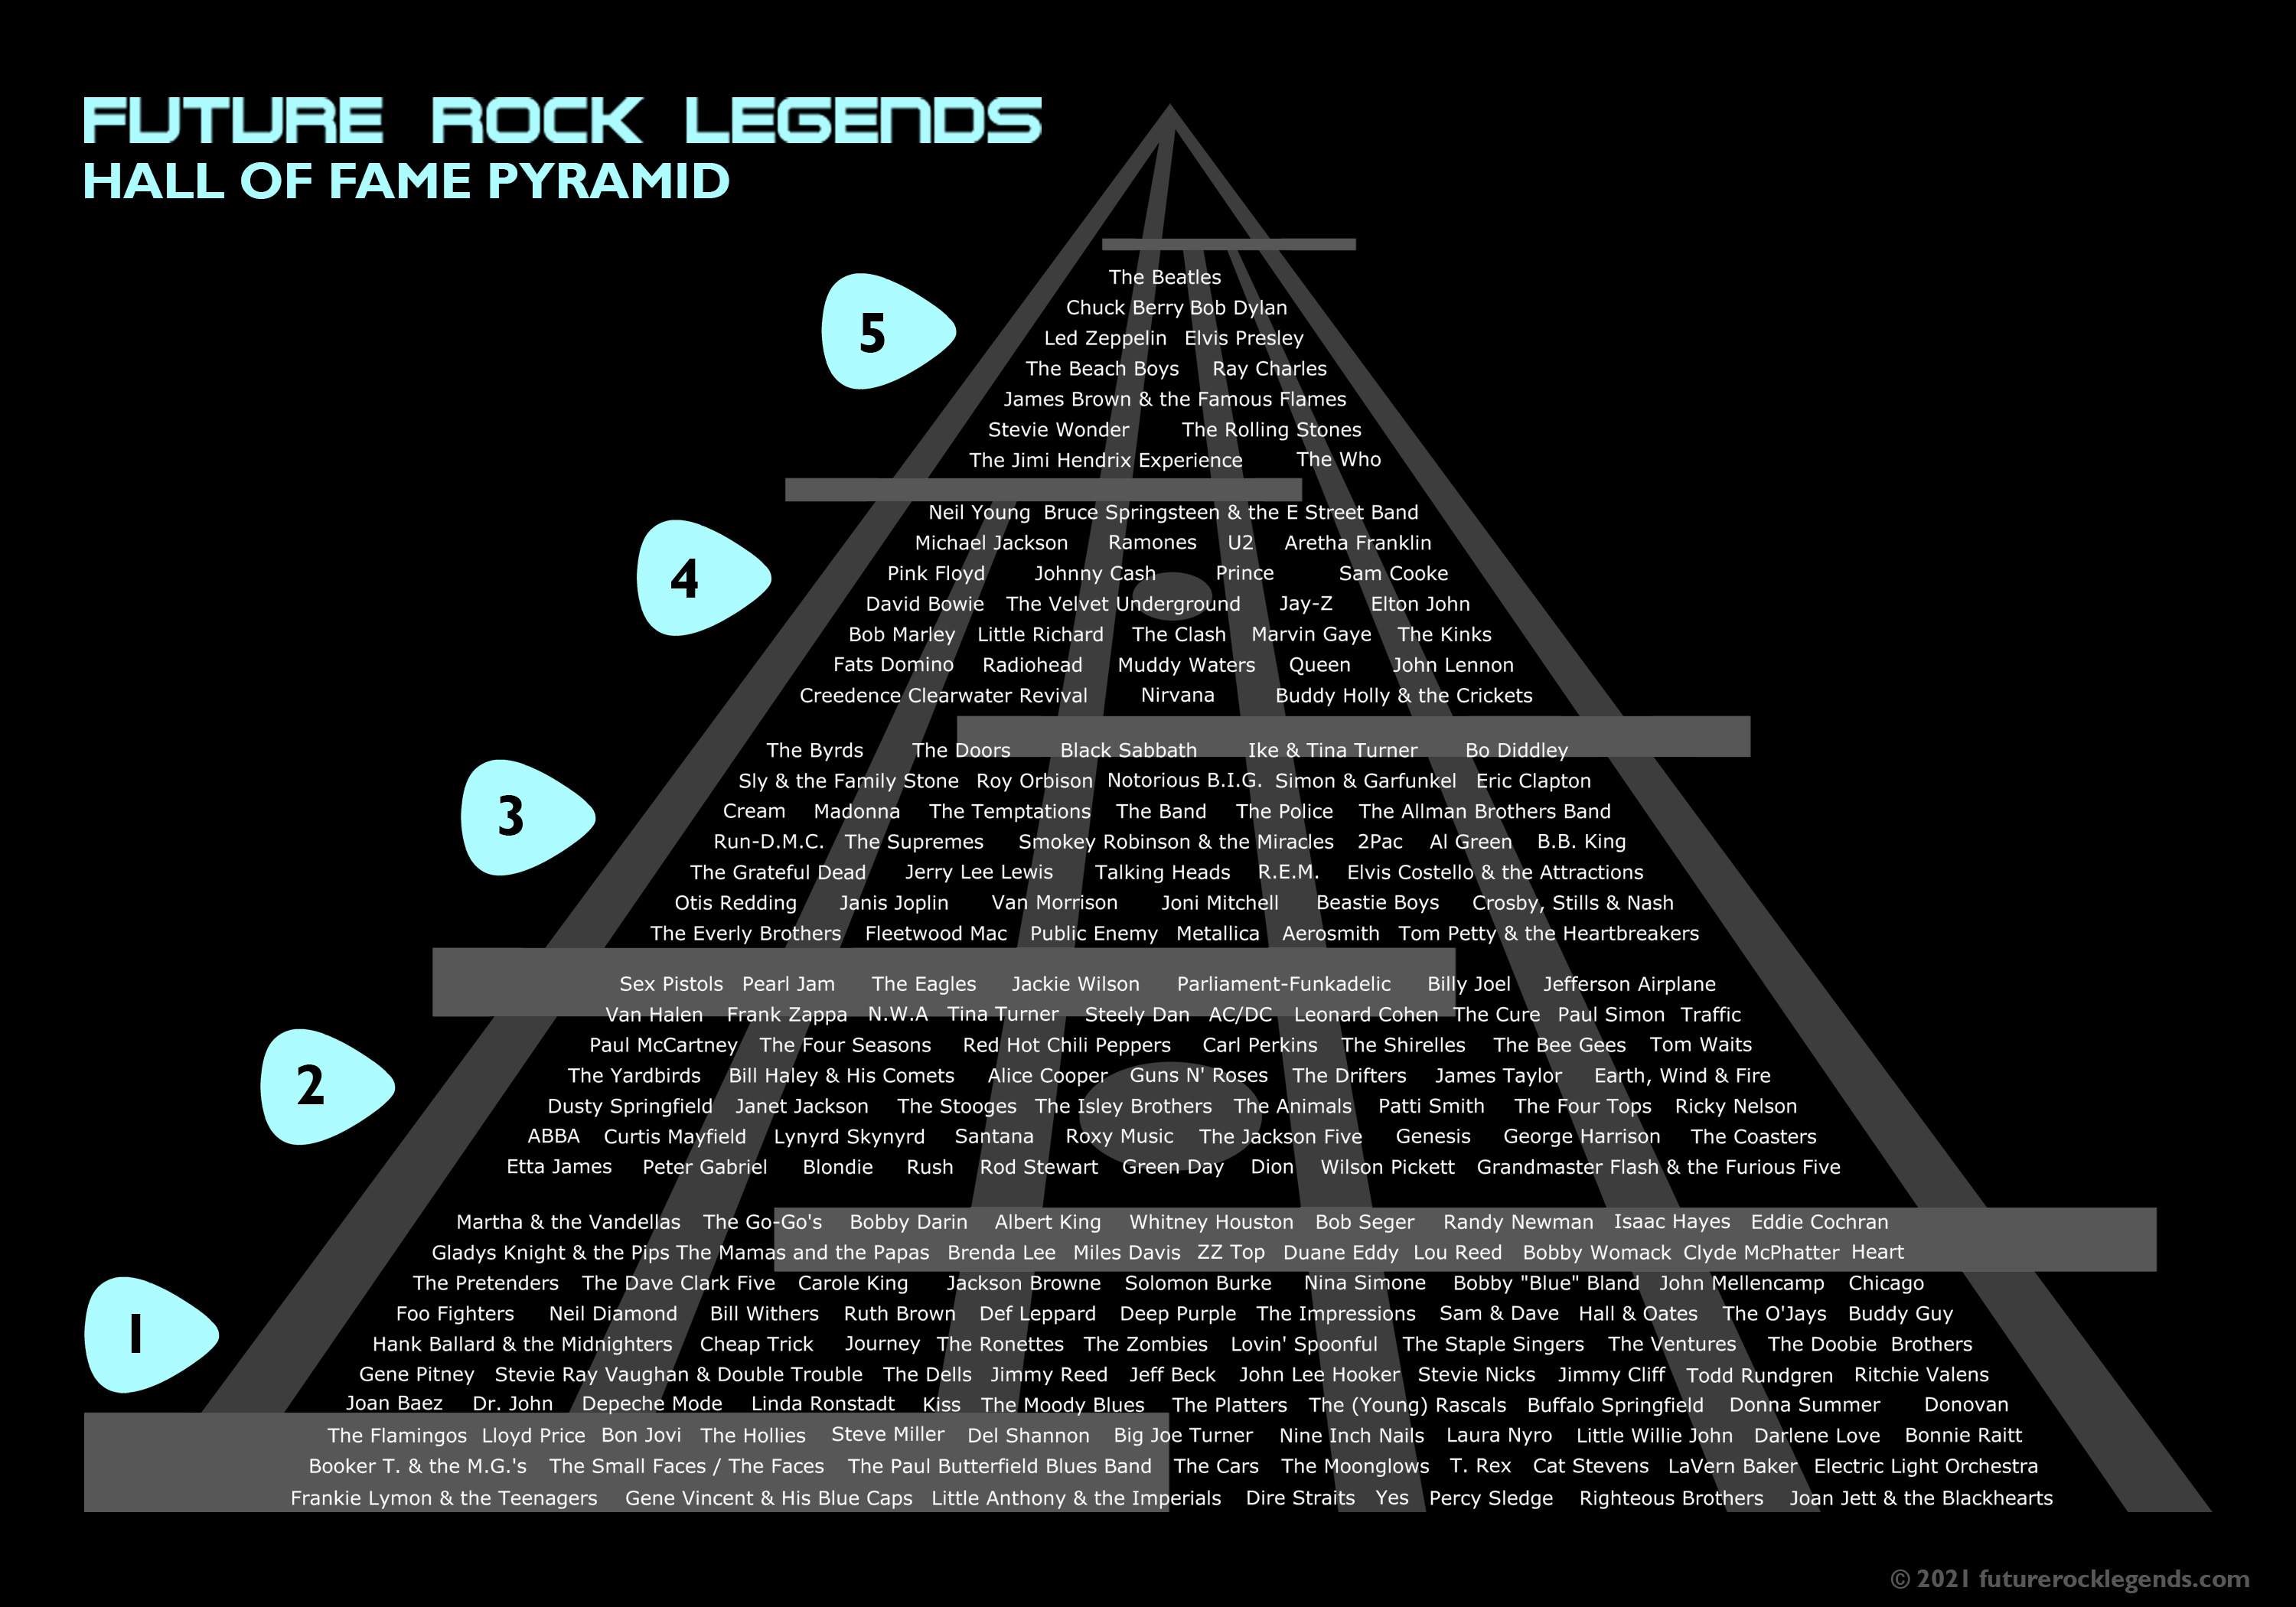 Rock and Roll Hall of Fame Pyramid